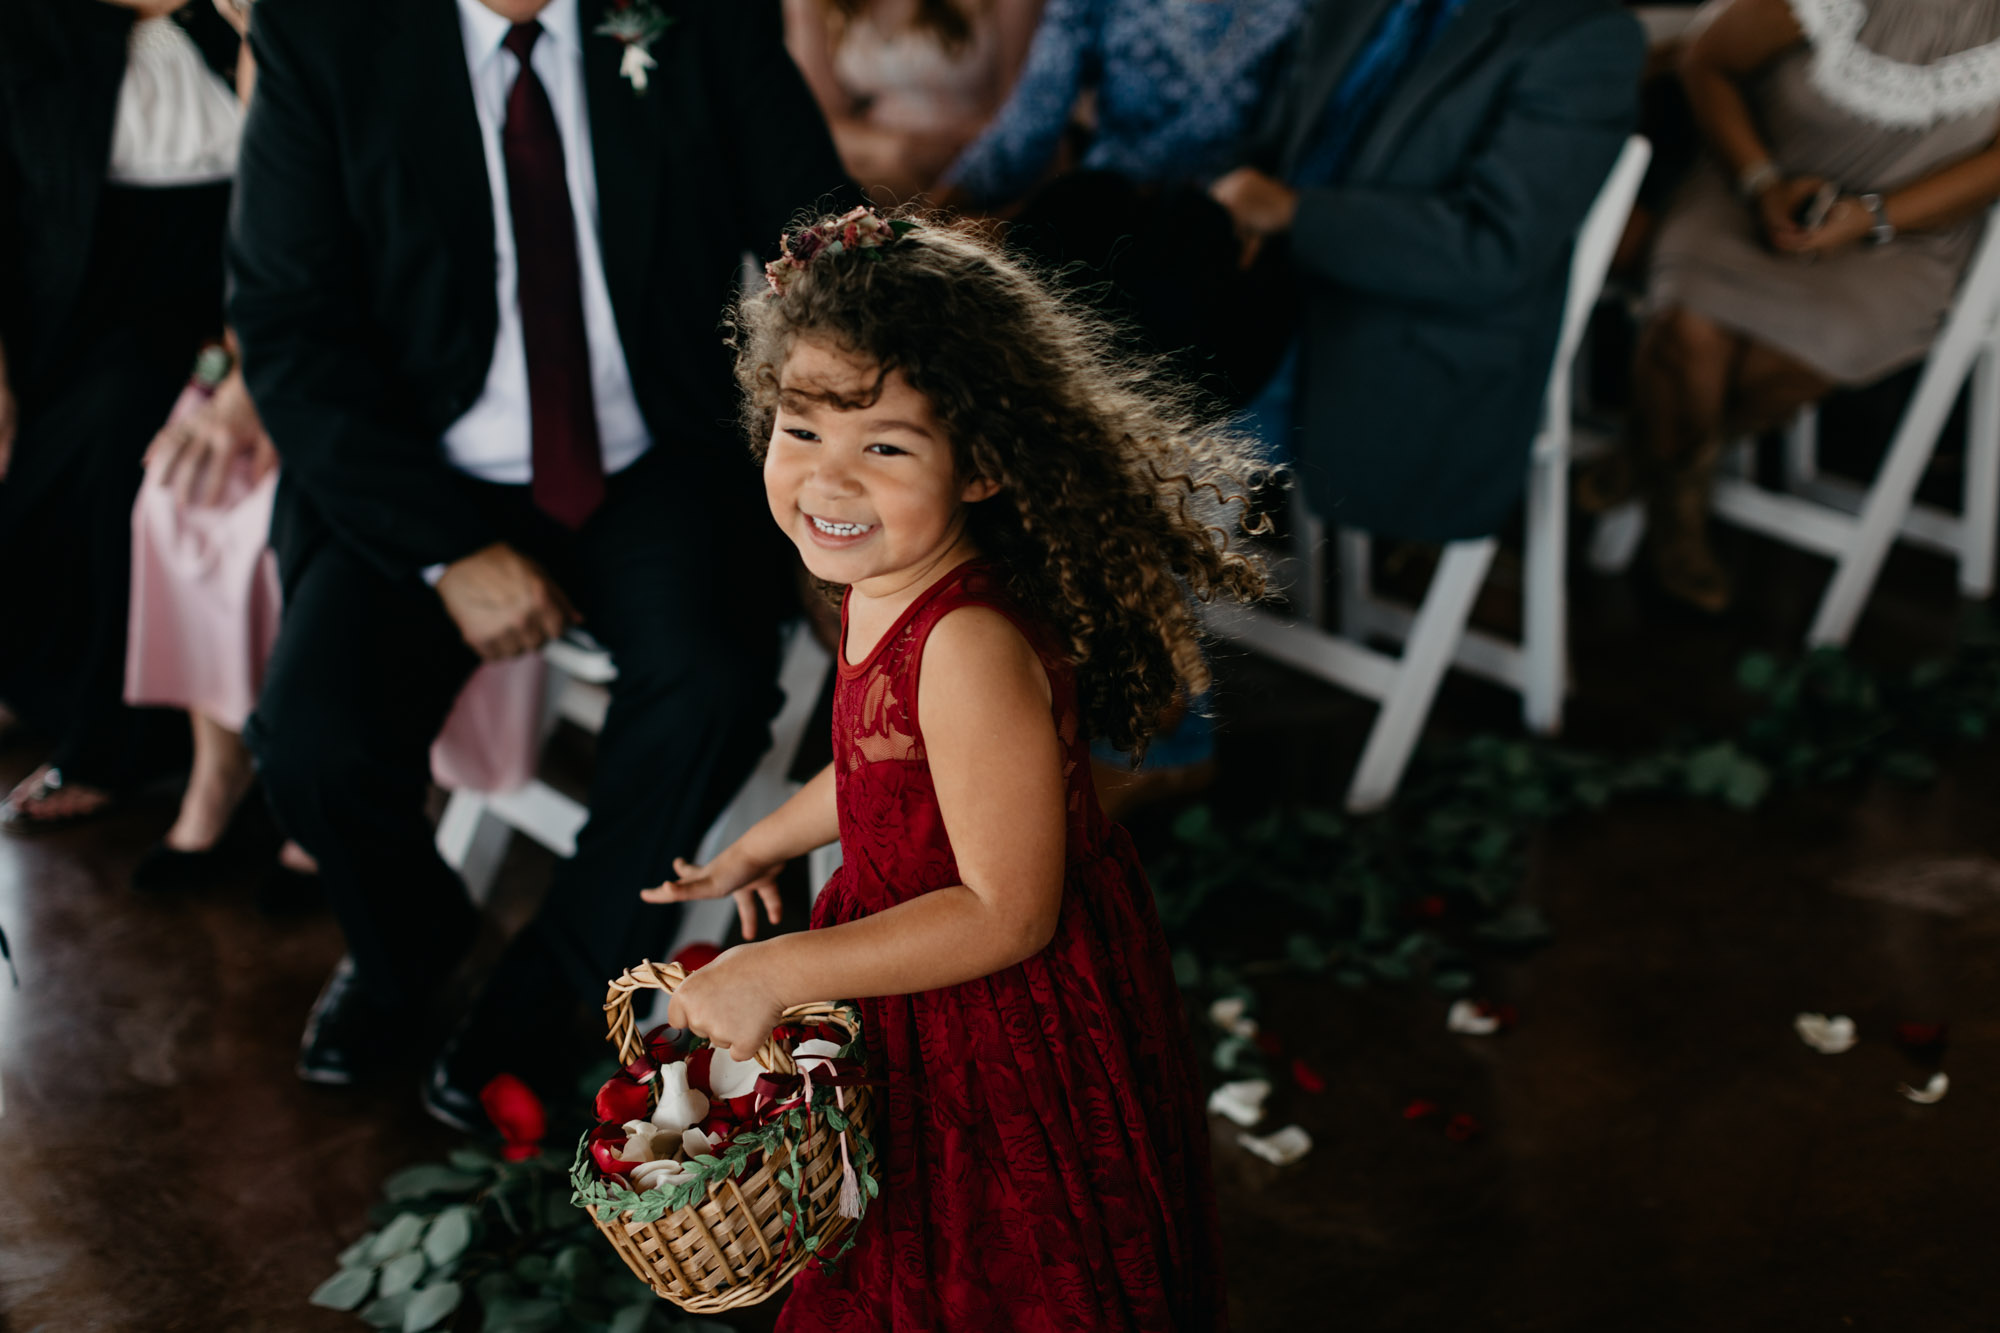 flower girl happily walking down the aisle